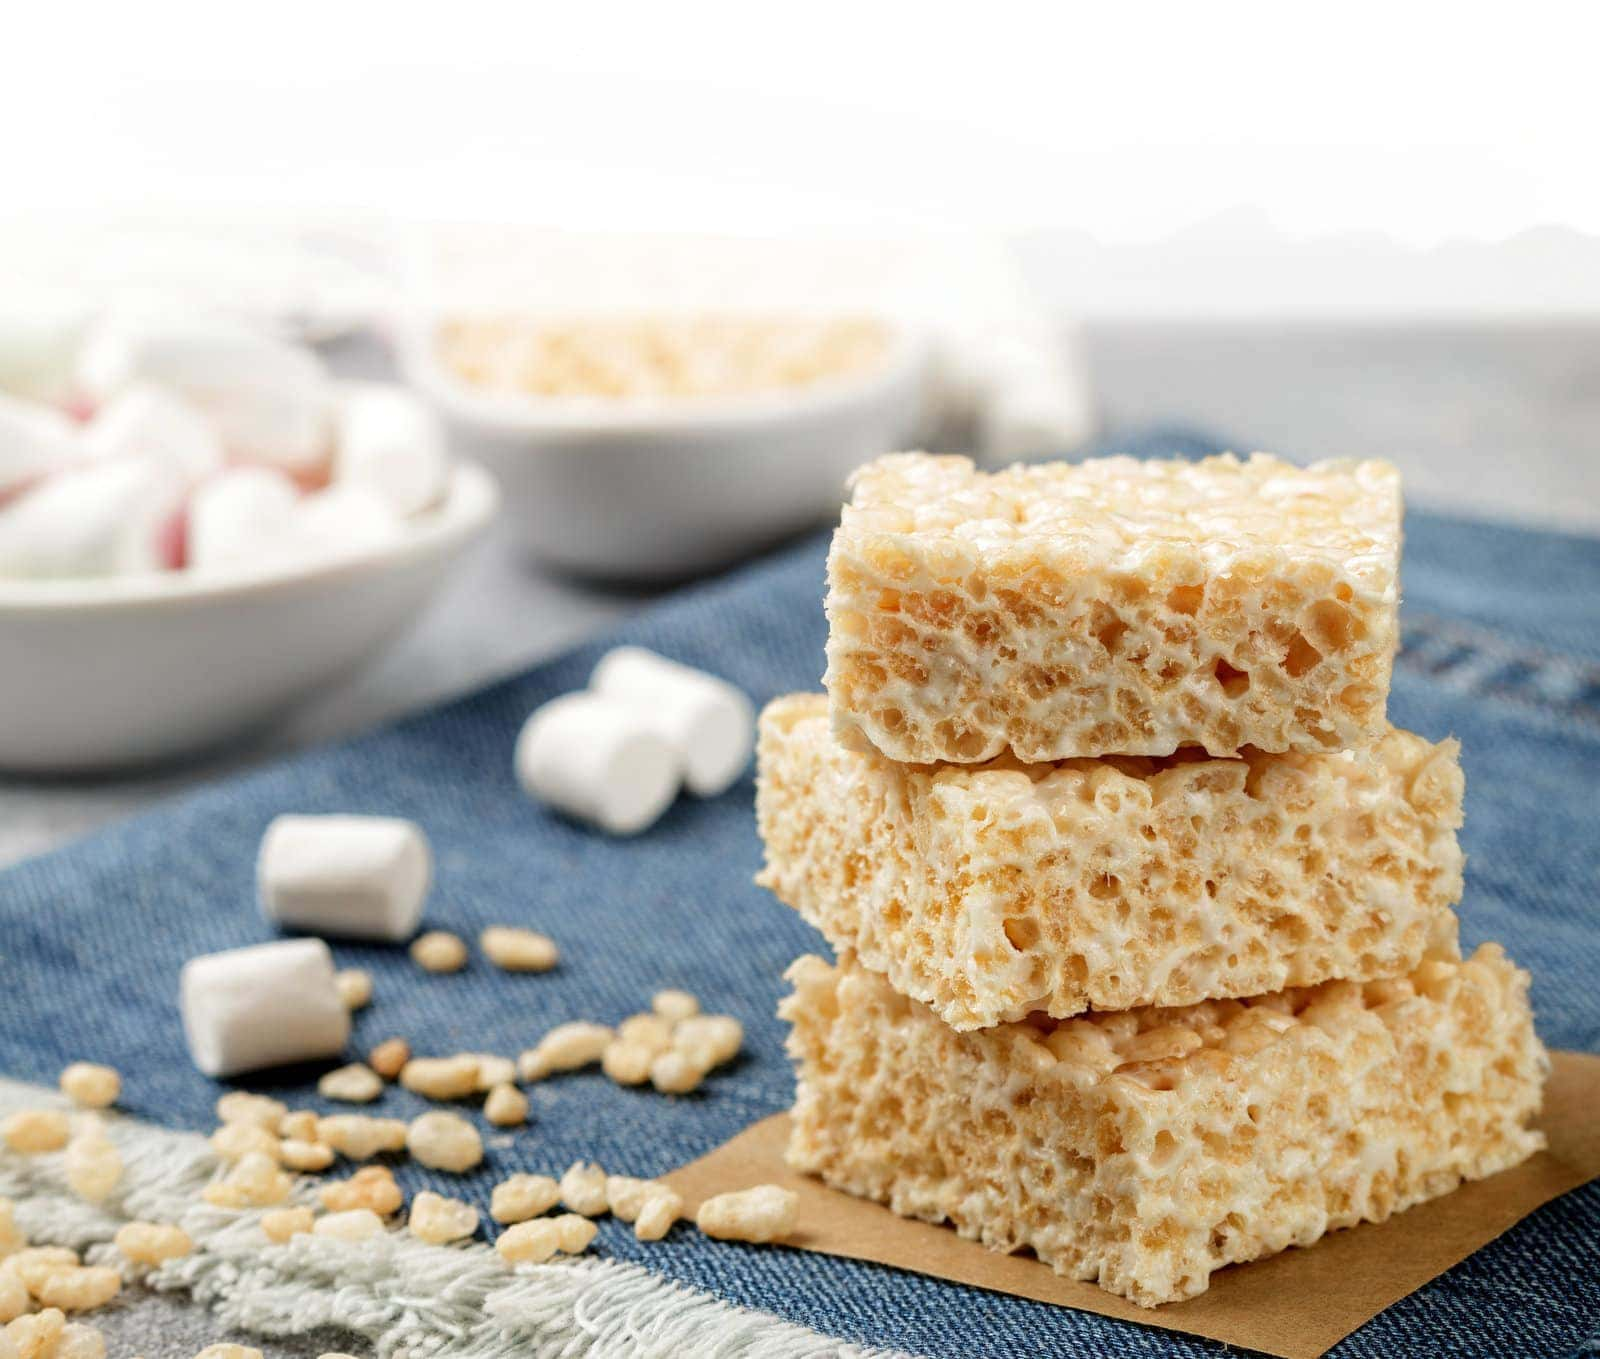 Should You Eat a Rice Krispies Treat Before Working Out?